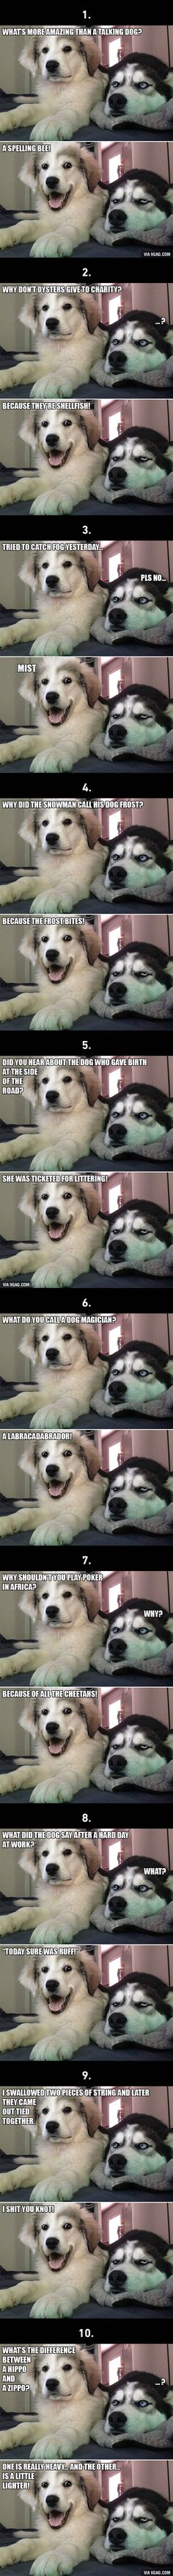 10 Best Bad Puns Dog Memes Ever is part of Puns jokes - More memes, funny videos and pics on Dog Jokes, Puns Jokes, Corny Jokes, Funny Animal Jokes, Really Funny Memes, Cute Funny Animals, Stupid Funny Memes, Funny Animal Pictures, Puns Hilarious